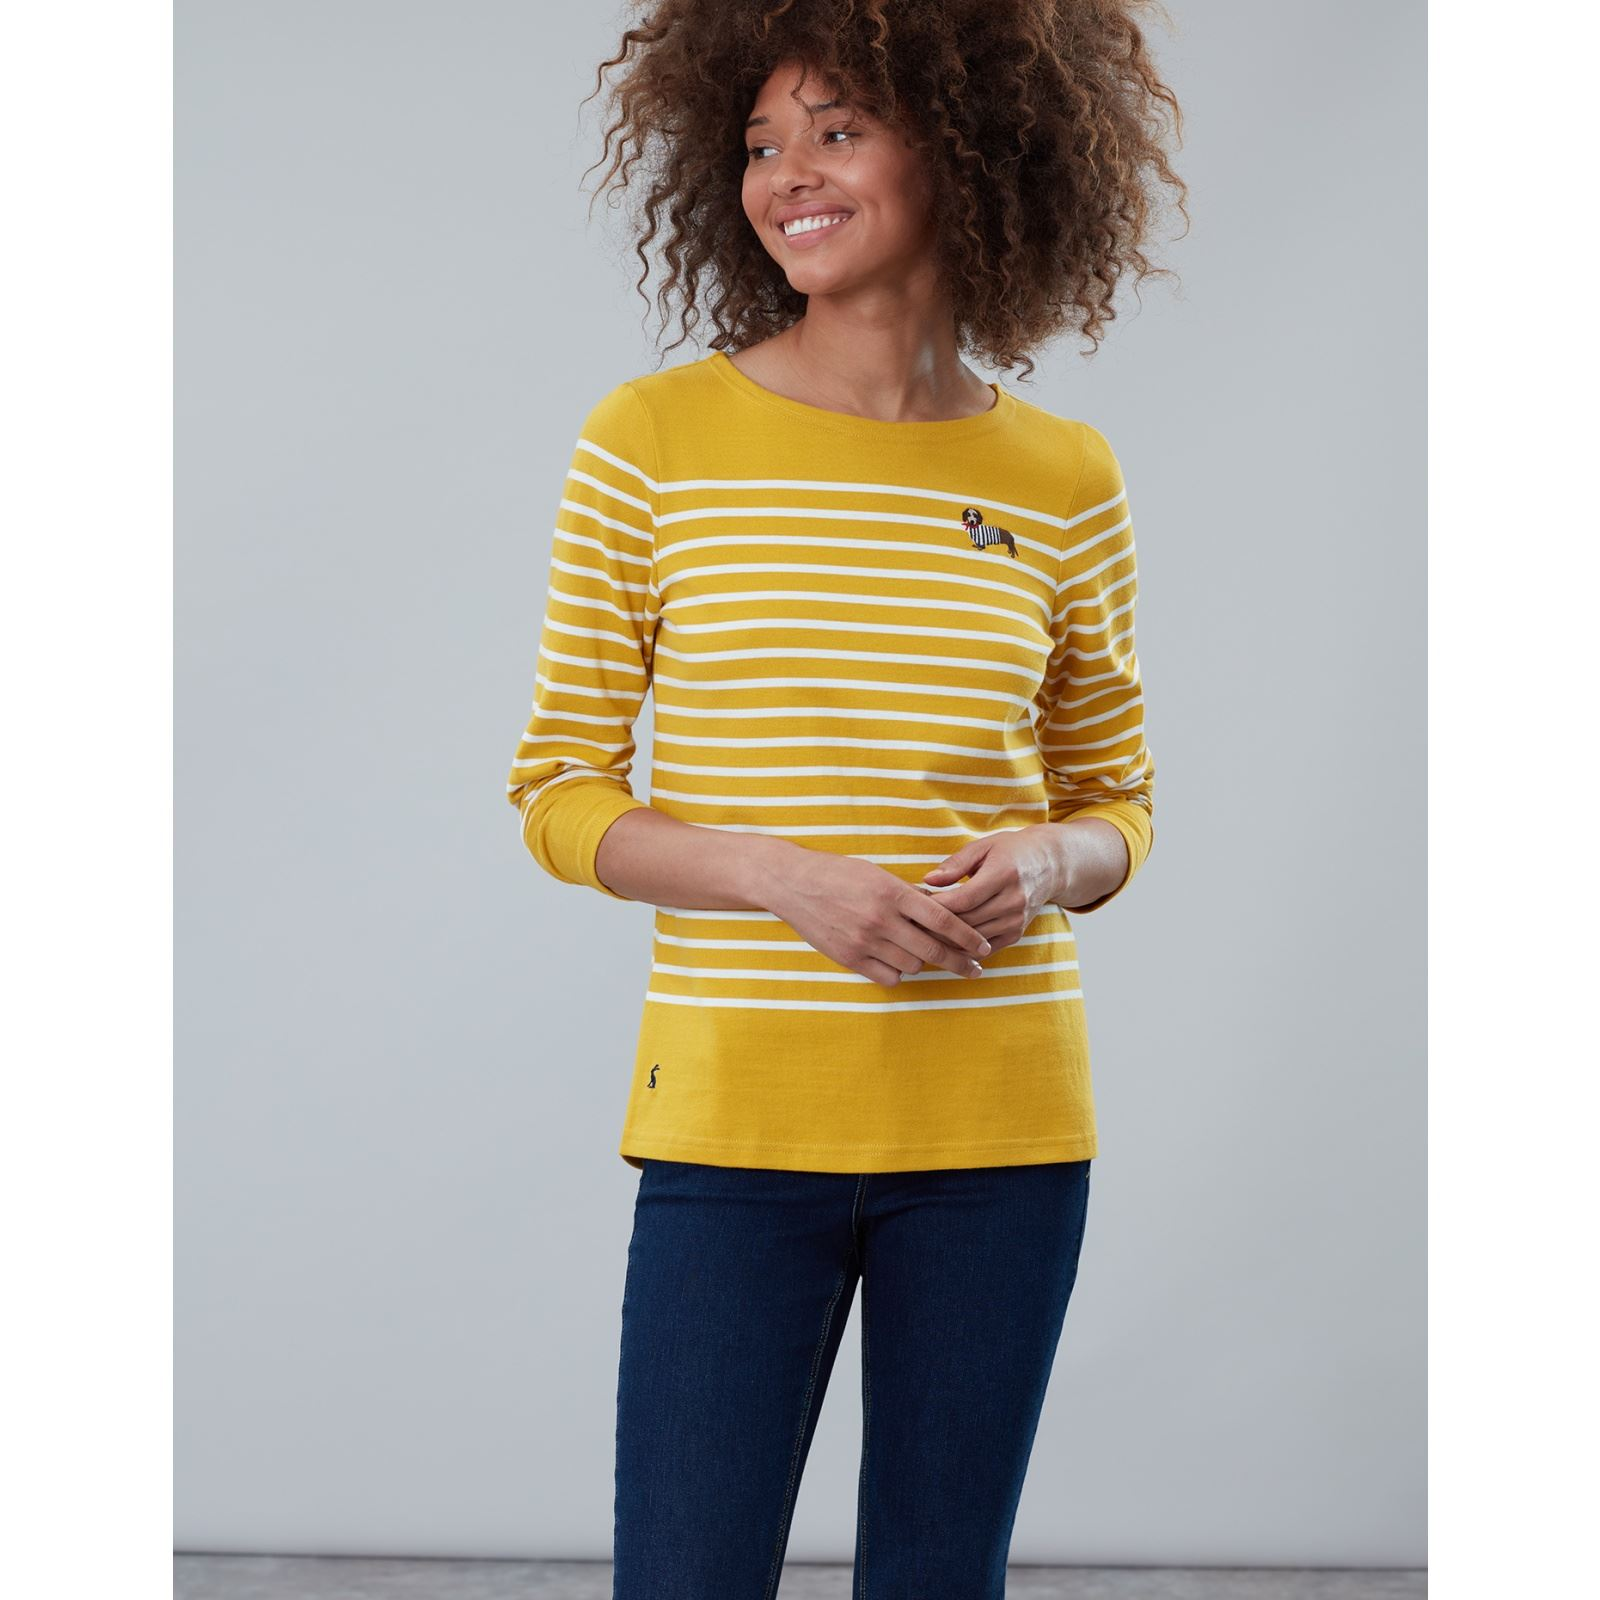 Joules-Harbour-Bordado-Manga-Larga-Jersey-Top-Mas-Colores miniatura 7